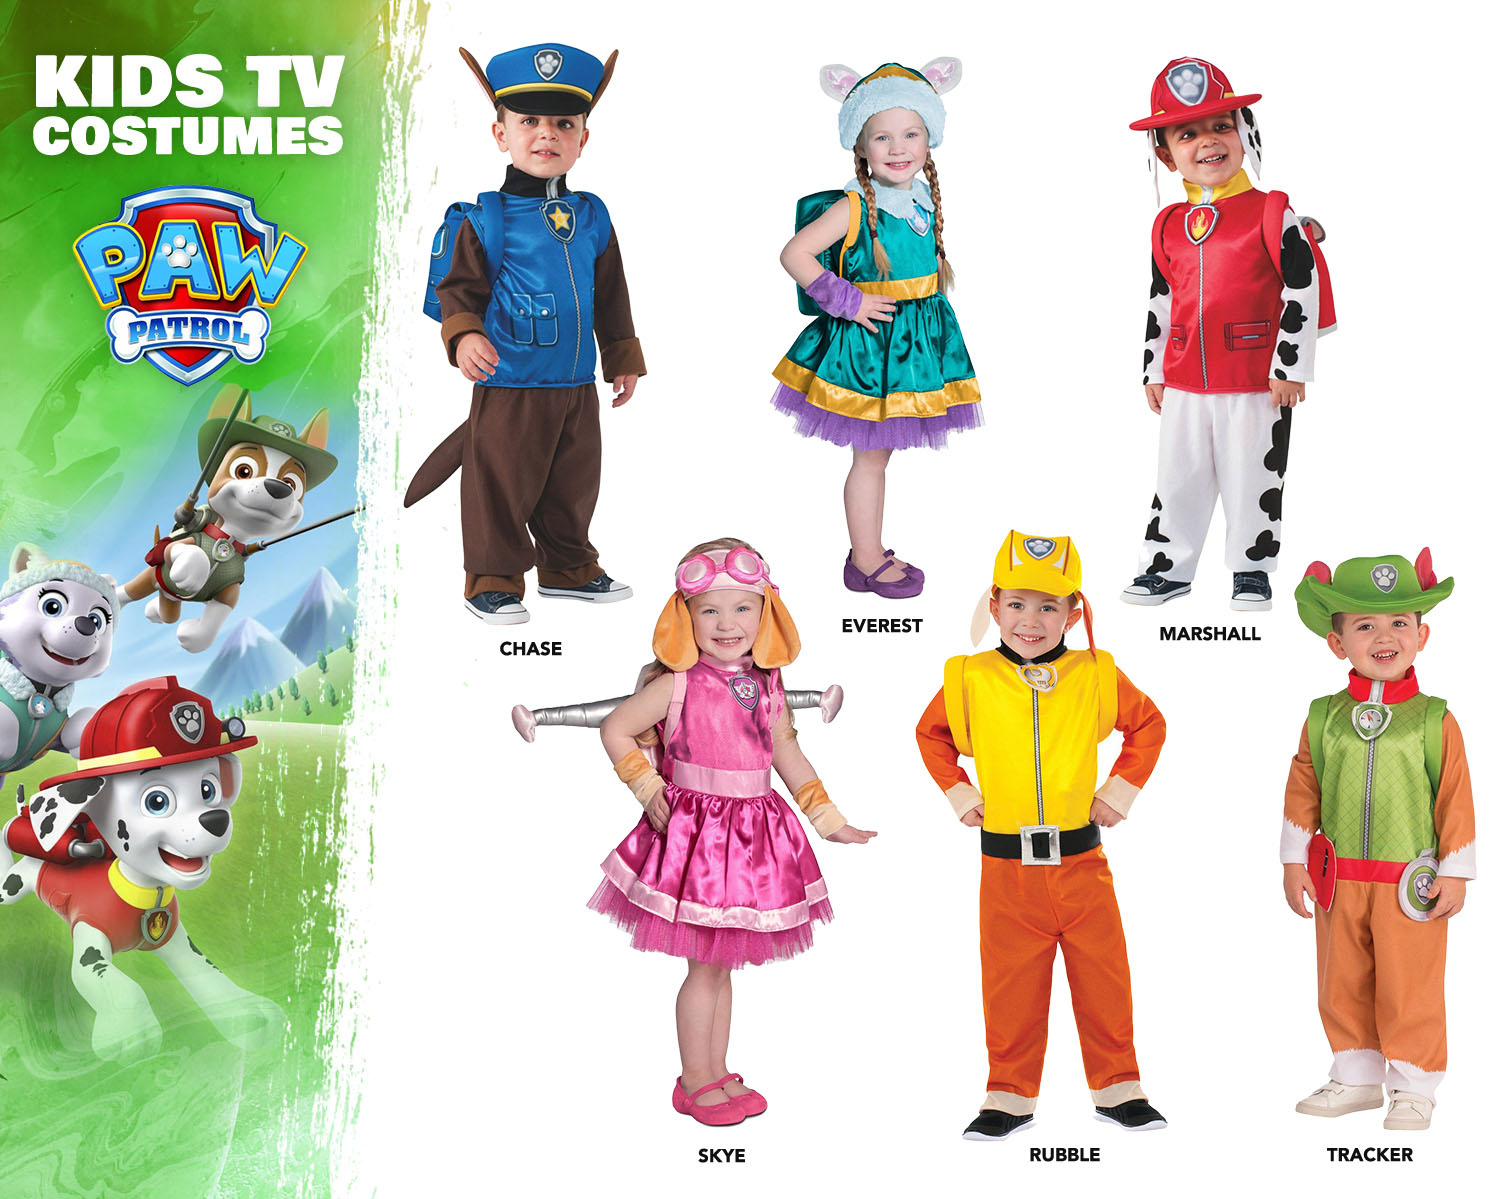 PAW Patrol Costume Ideas